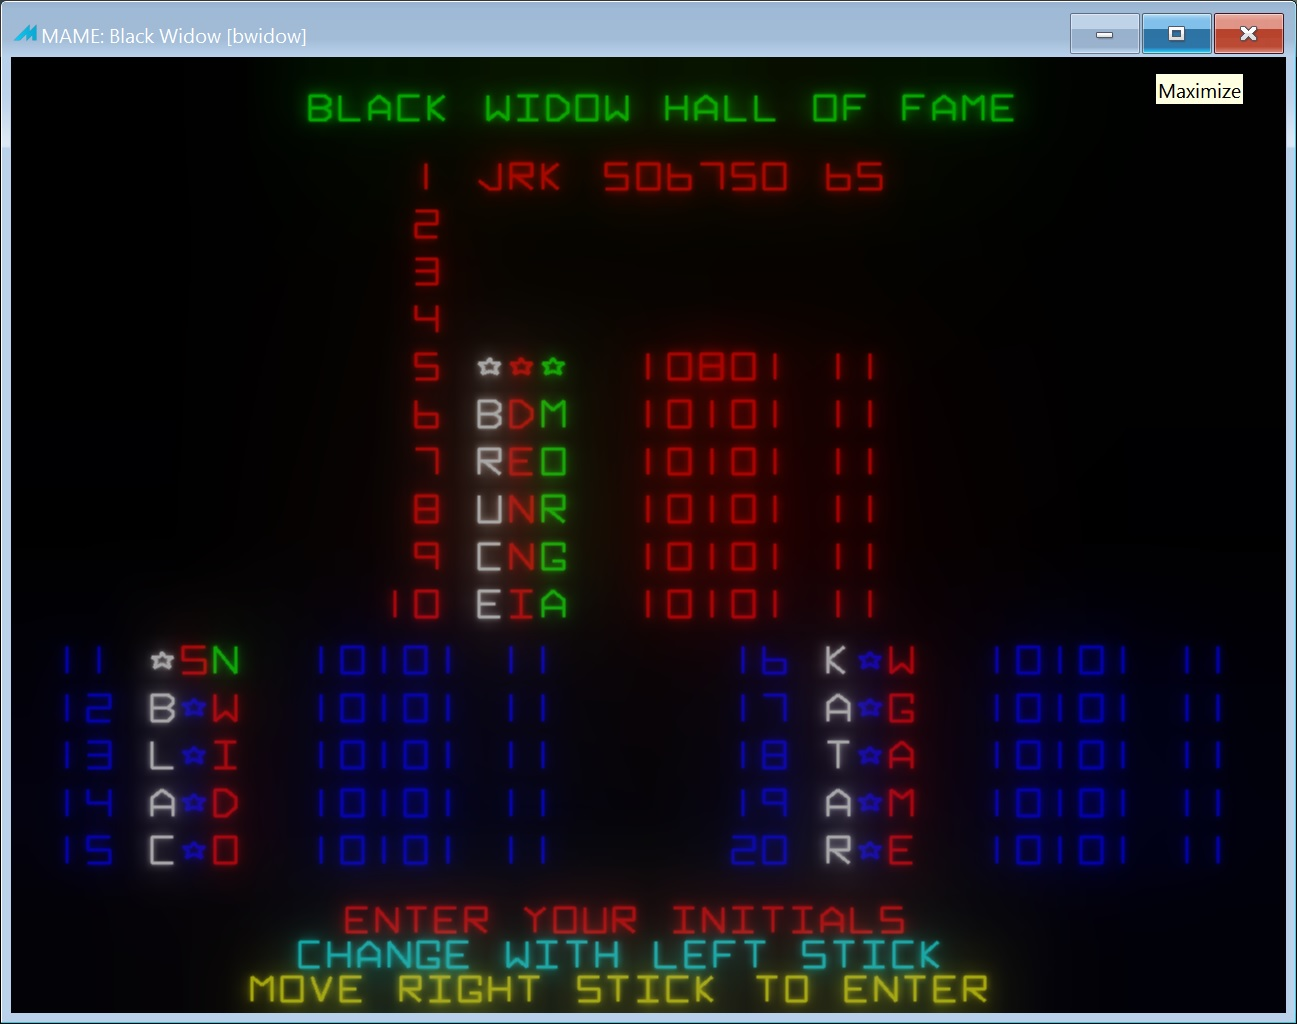 jerky: Black Widow (Arcade Emulated / M.A.M.E.) 506,750 points on 2018-02-02 09:49:29